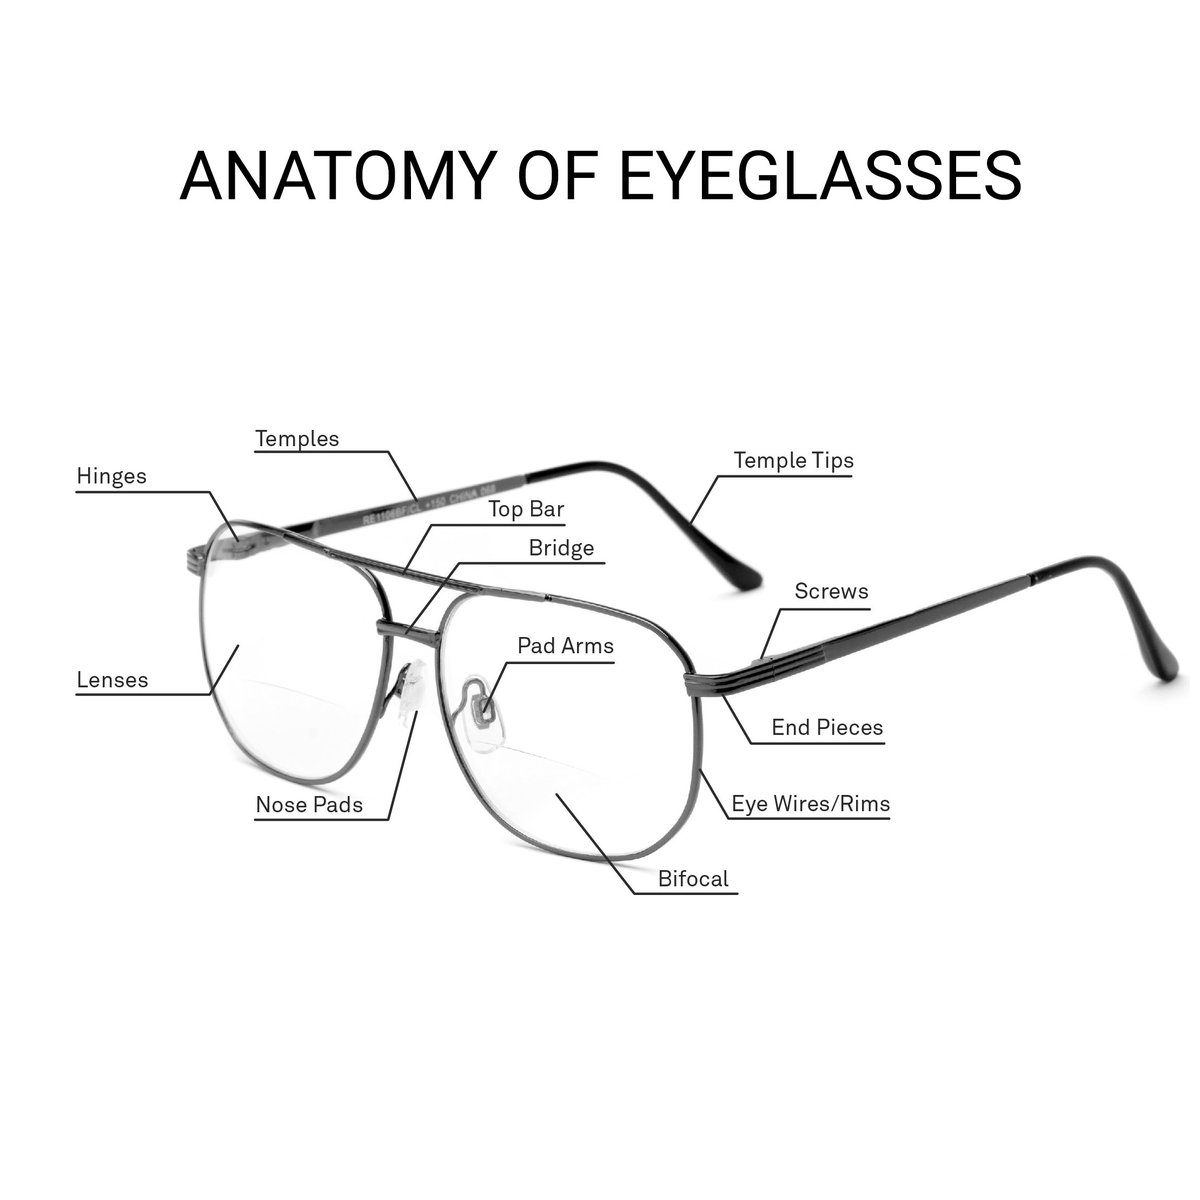 hight resolution of  eyeglasses diagram parts hinges temples screws rims arms lenses templetips eyewires padarms nosepads eye nose word wordfalls knowledge